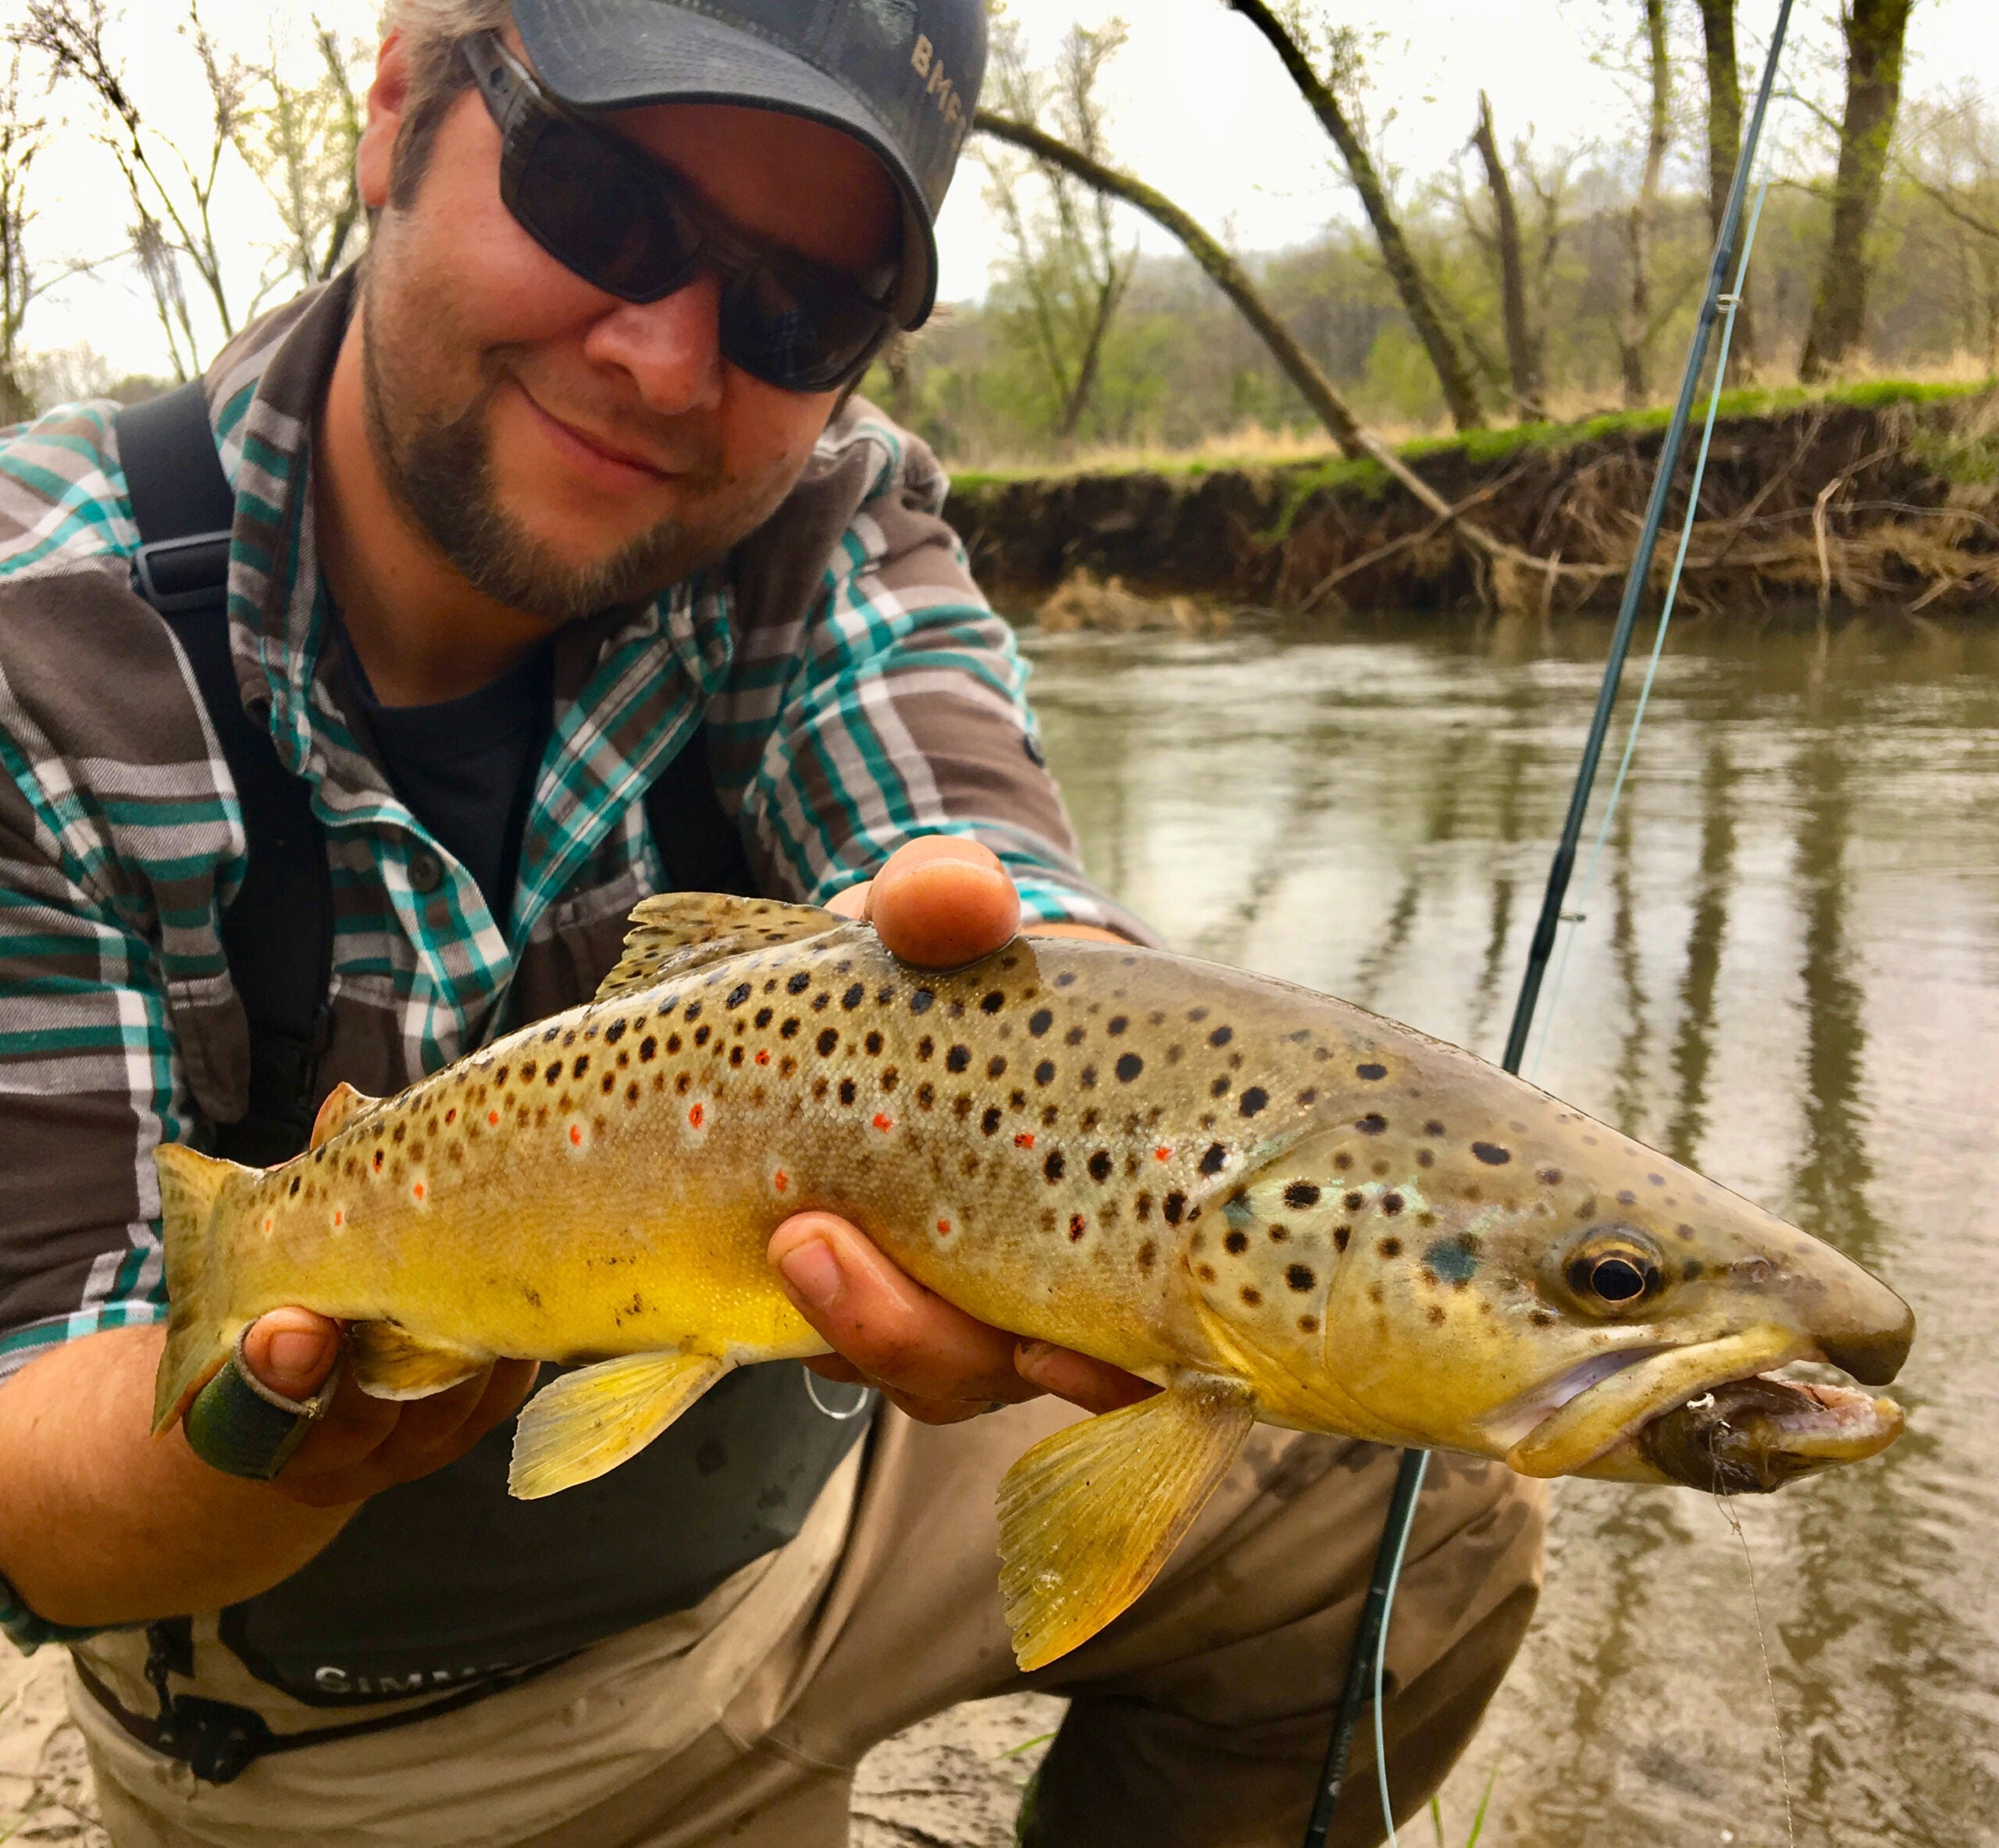 Hook Shots: Operation Iowa Brown Trout